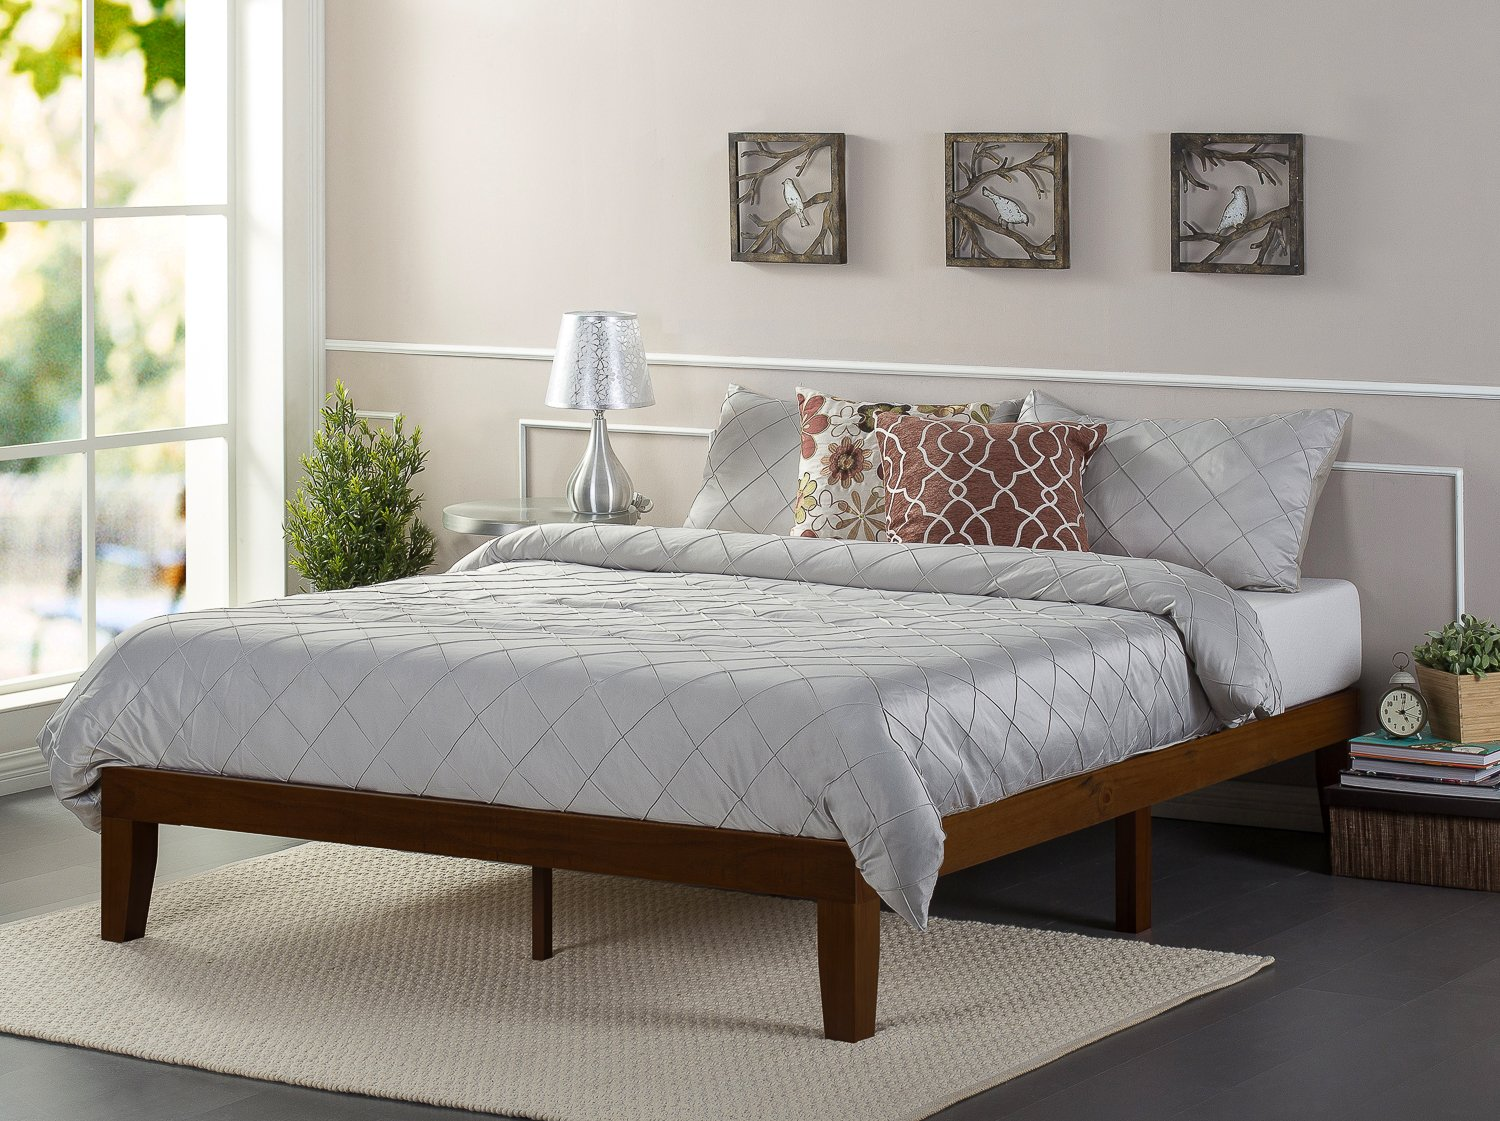 Zinus 12 Inch Deluxe Wood Platform Bed/No Boxspring Needed/Wood Slat Support/Antique Espresso Finish, Twin OLB-PWPBBE-12T